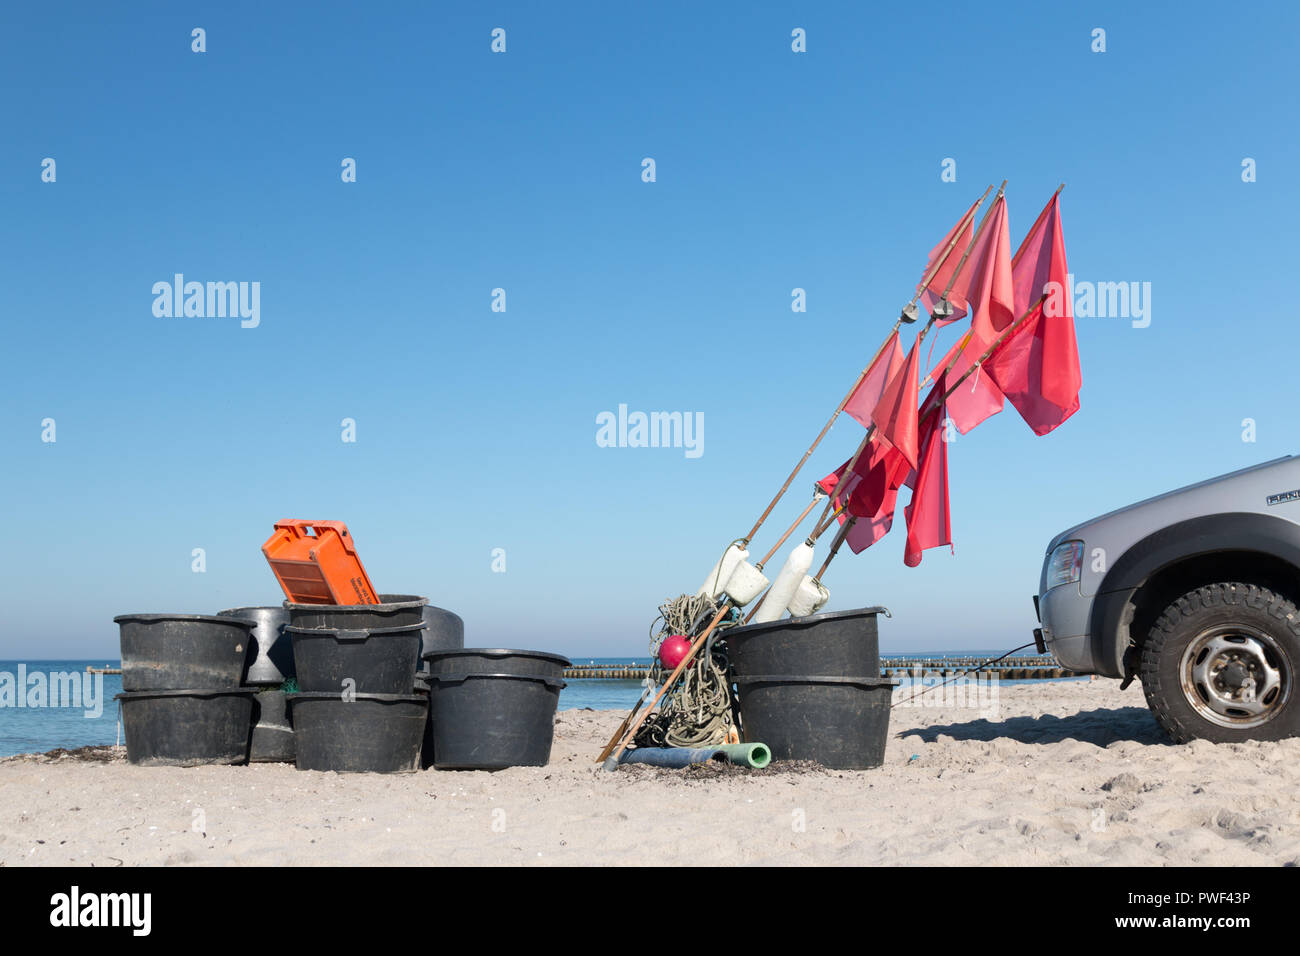 Equipment of a fisherman on the beach of the Baltic Sea. - Stock Image